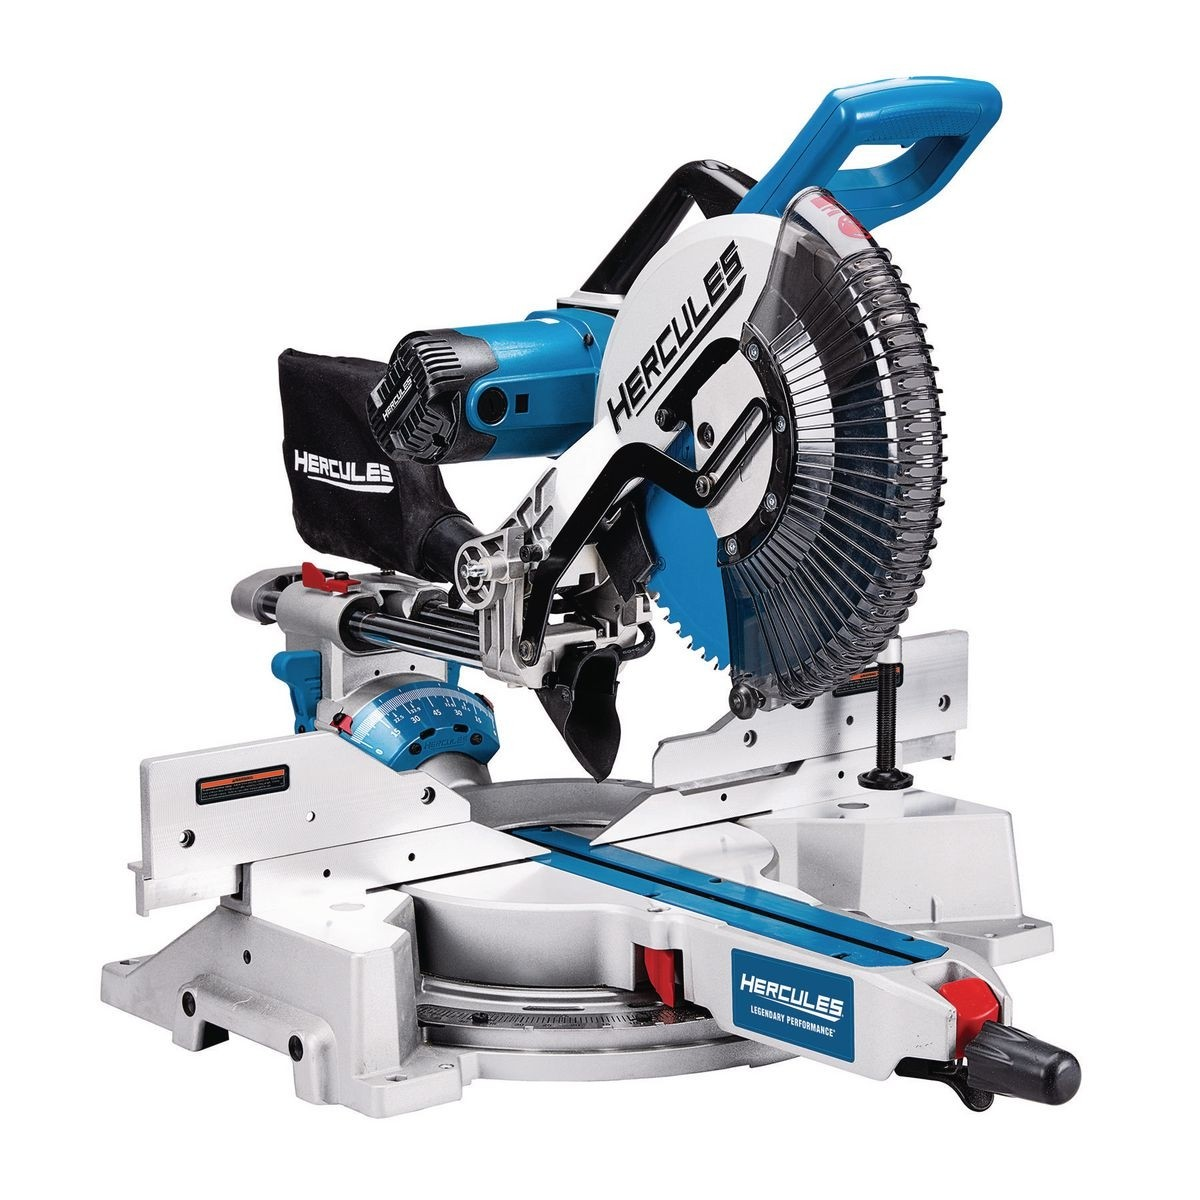 Hercules professional 12 double bevel sliding miter saw is it a harbor freights in house hercules brand has come out with a new miter saw geared towards pros its the hercules professional 12 double bevel sliding greentooth Choice Image